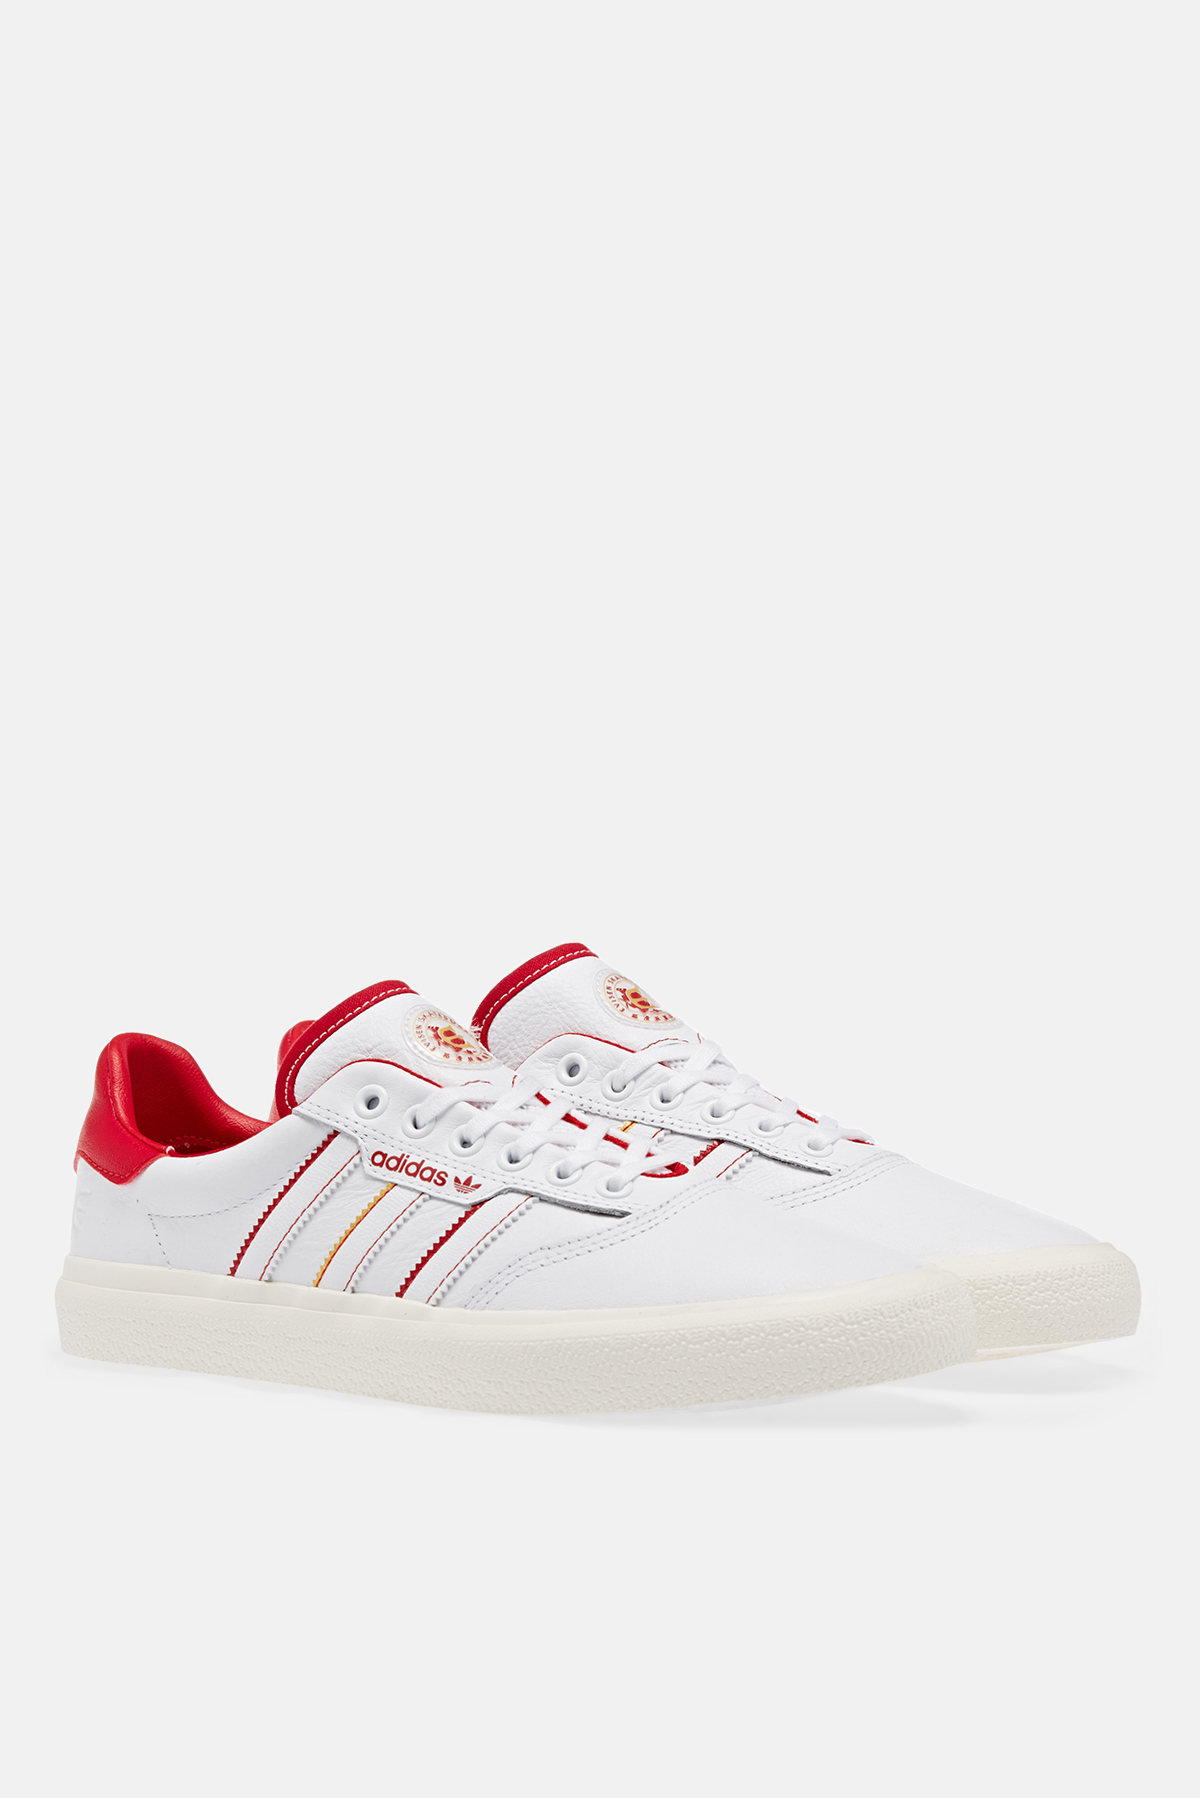 Adidas 3mc X Evisen Schuhe available from Priory